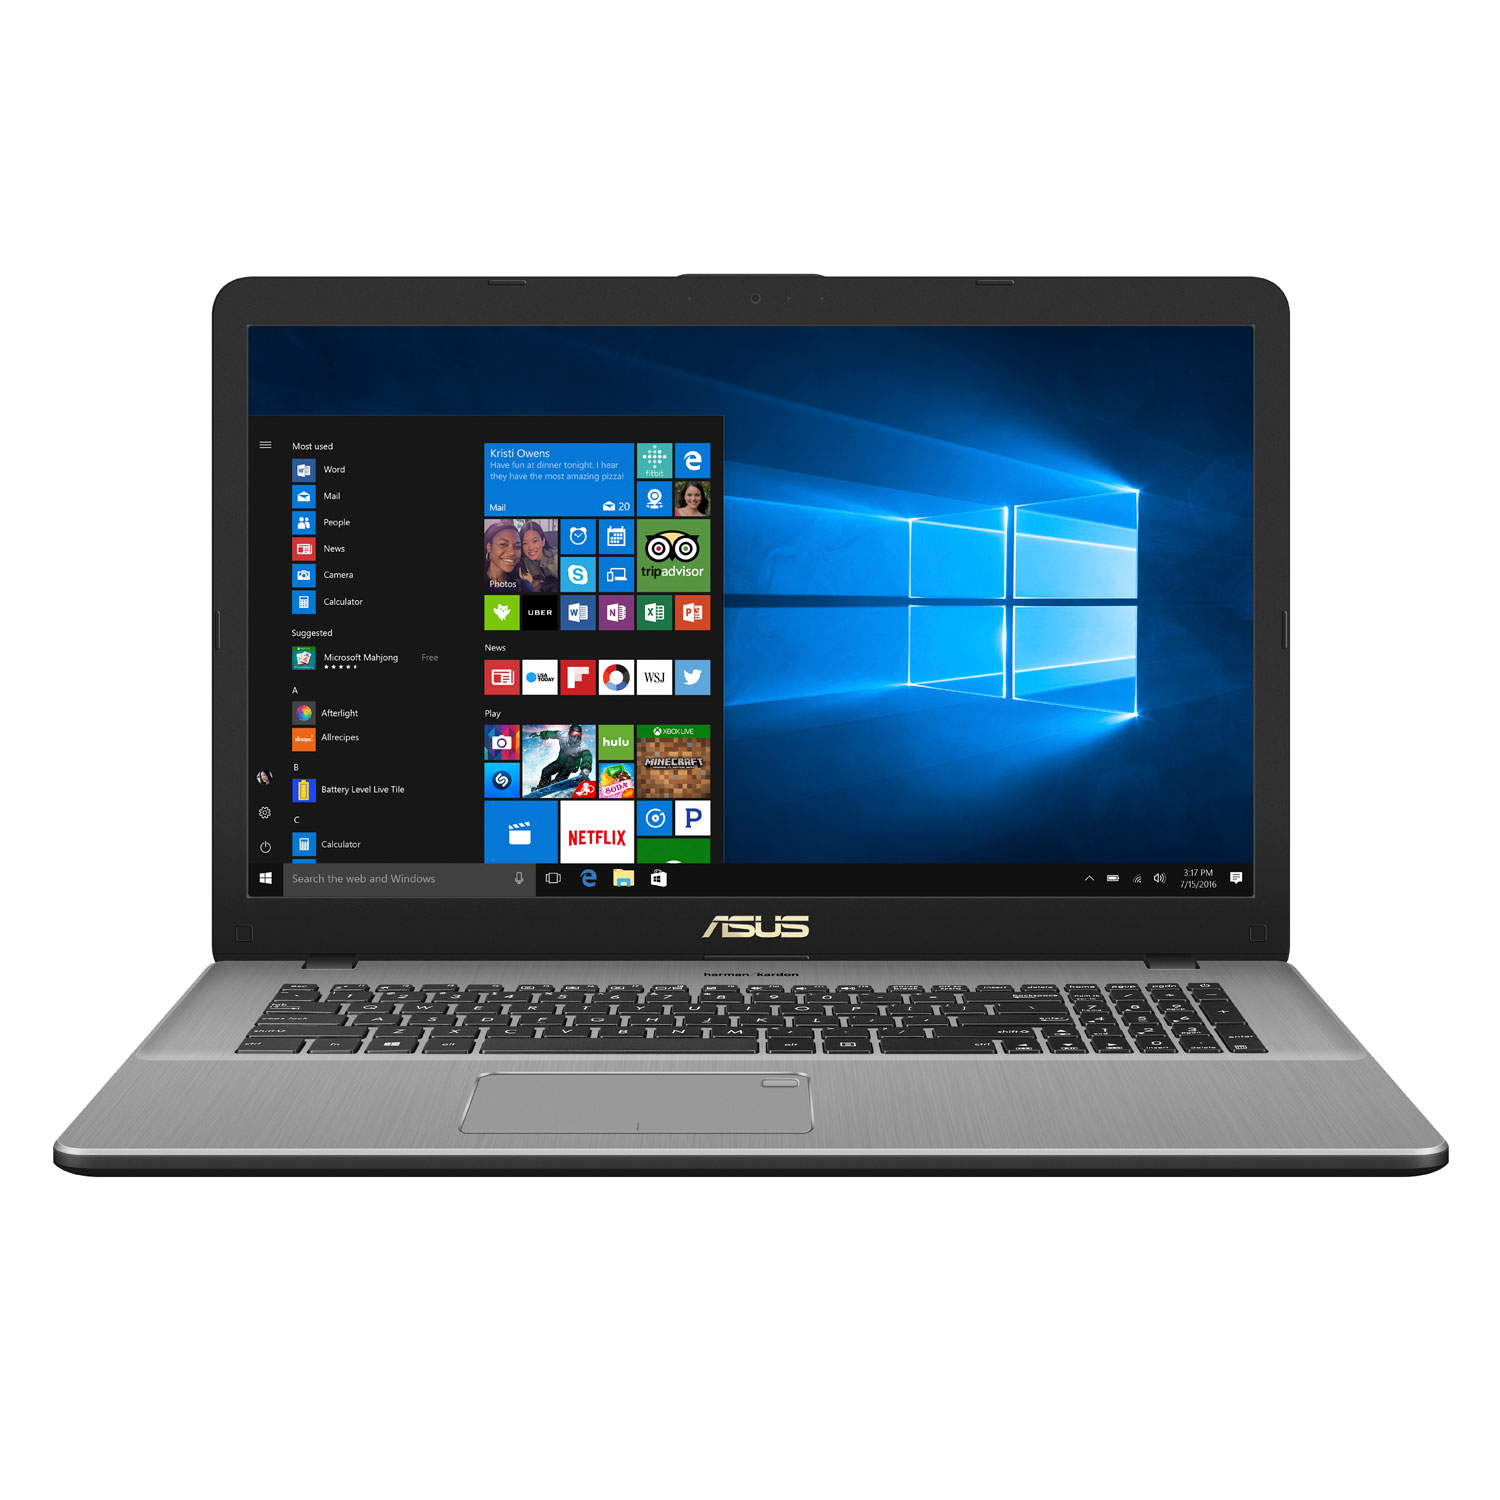 "PC portable ASUS VivoBook Pro N705UN-GC064T Intel Core i5-8250U 8 Go SSD 128 Go + HDD 1 To 17.3"" LED Full HD NVIDIA GeForce MX150 Wi-Fi AC/Bluetooth Webcam Windows 10 Famille 64 bits (Garantie constructeur 2 ans)"